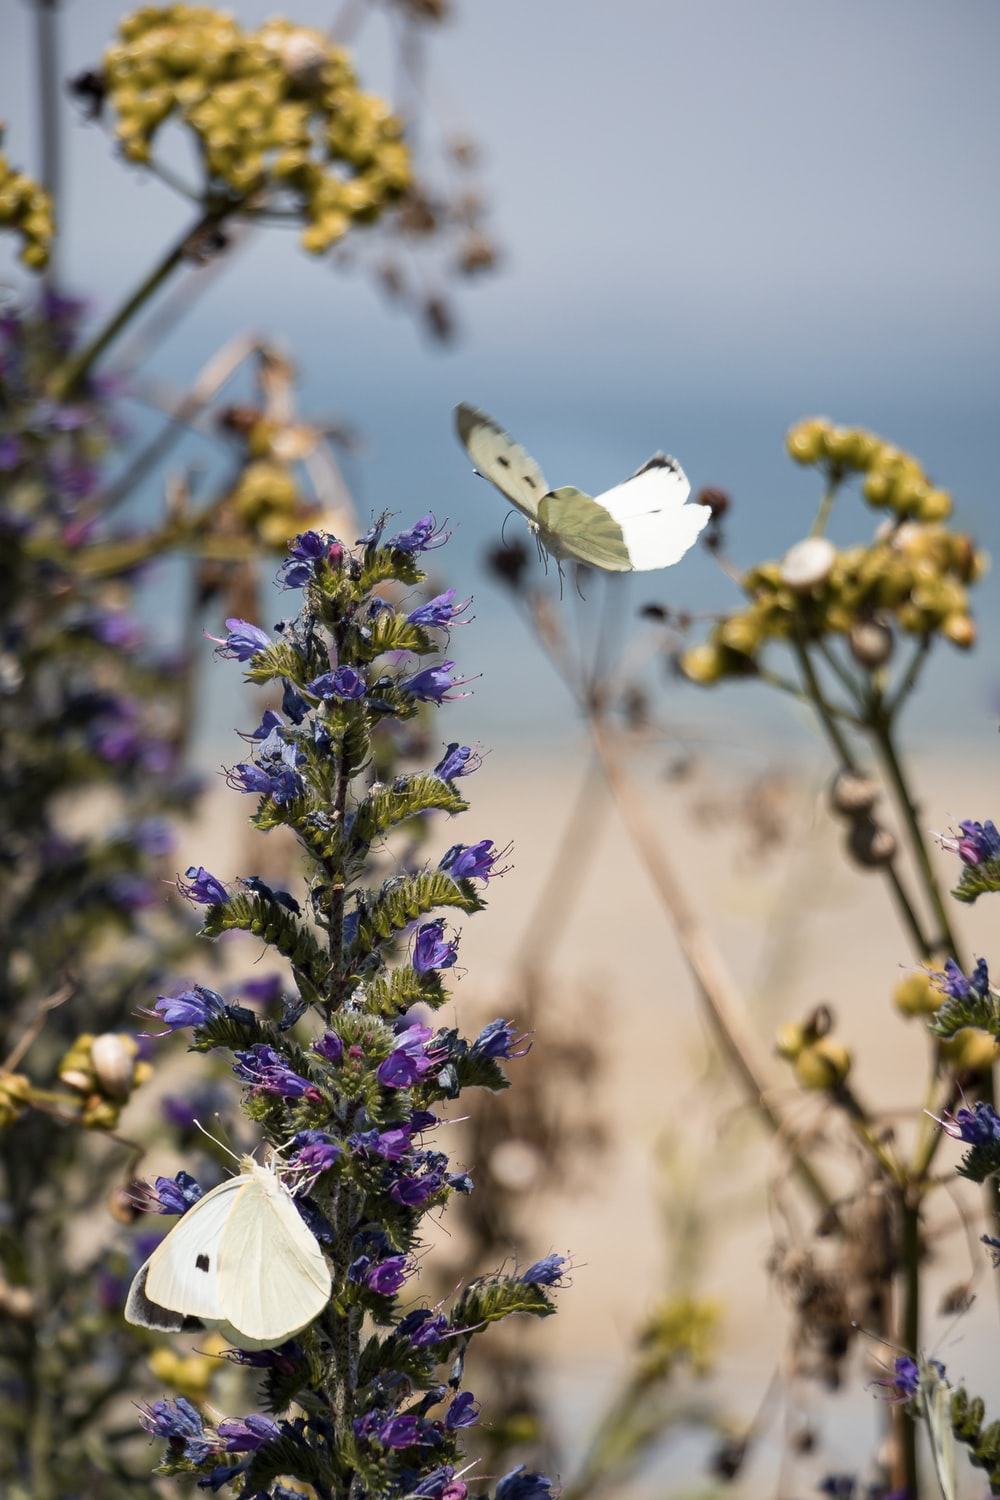 white butterfly perched on purple flower during daytime